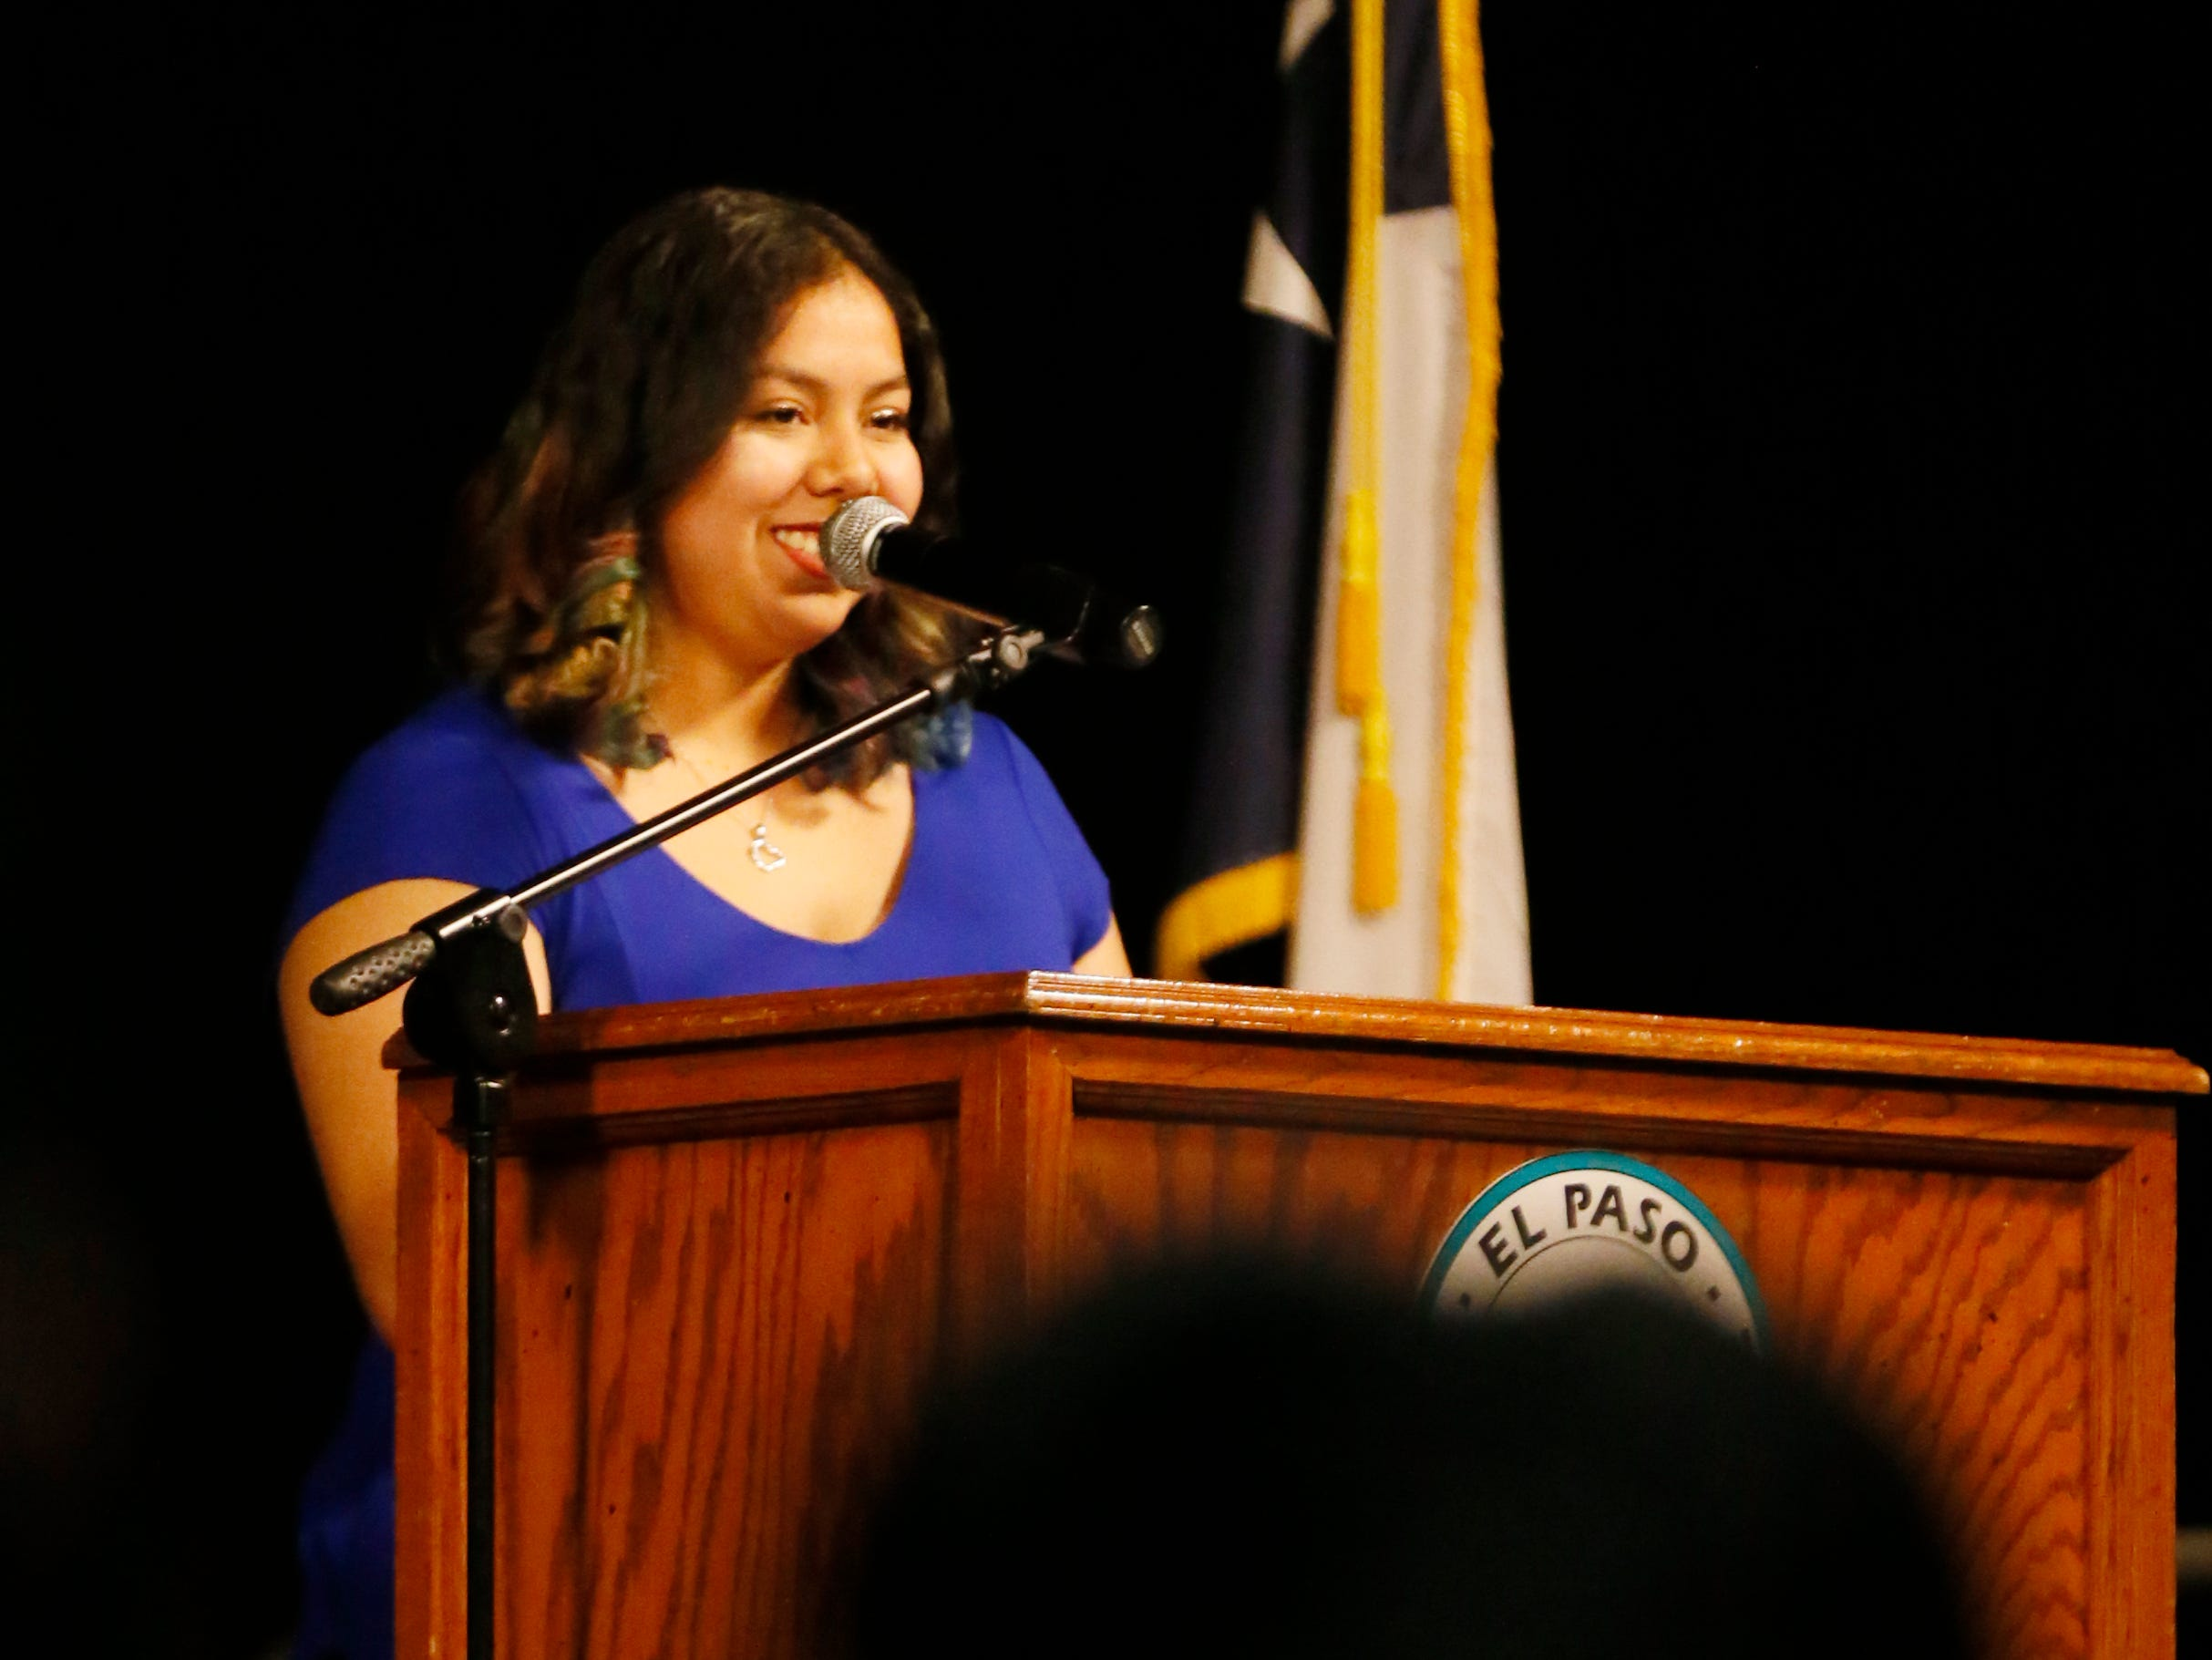 Mission Early College High School student Alexa Ochoa gives a speech to her class Tuesday, May 7, at stoling ceremony at EPCC Administrative Service Center in El Paso.